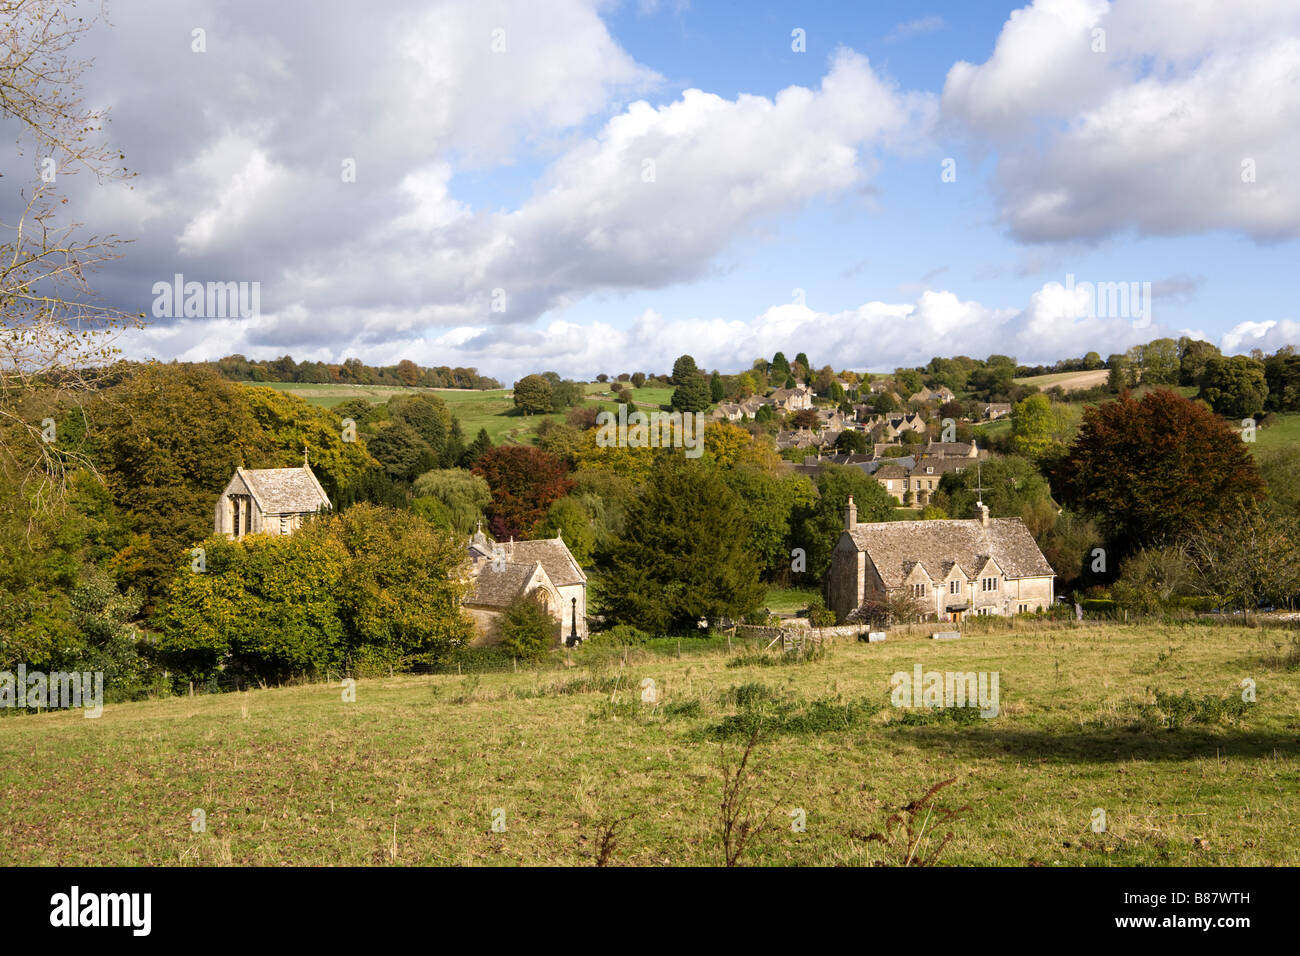 The Cotswold village of North Cerney in the Churn Valley, Gloucestershire Stock Photo